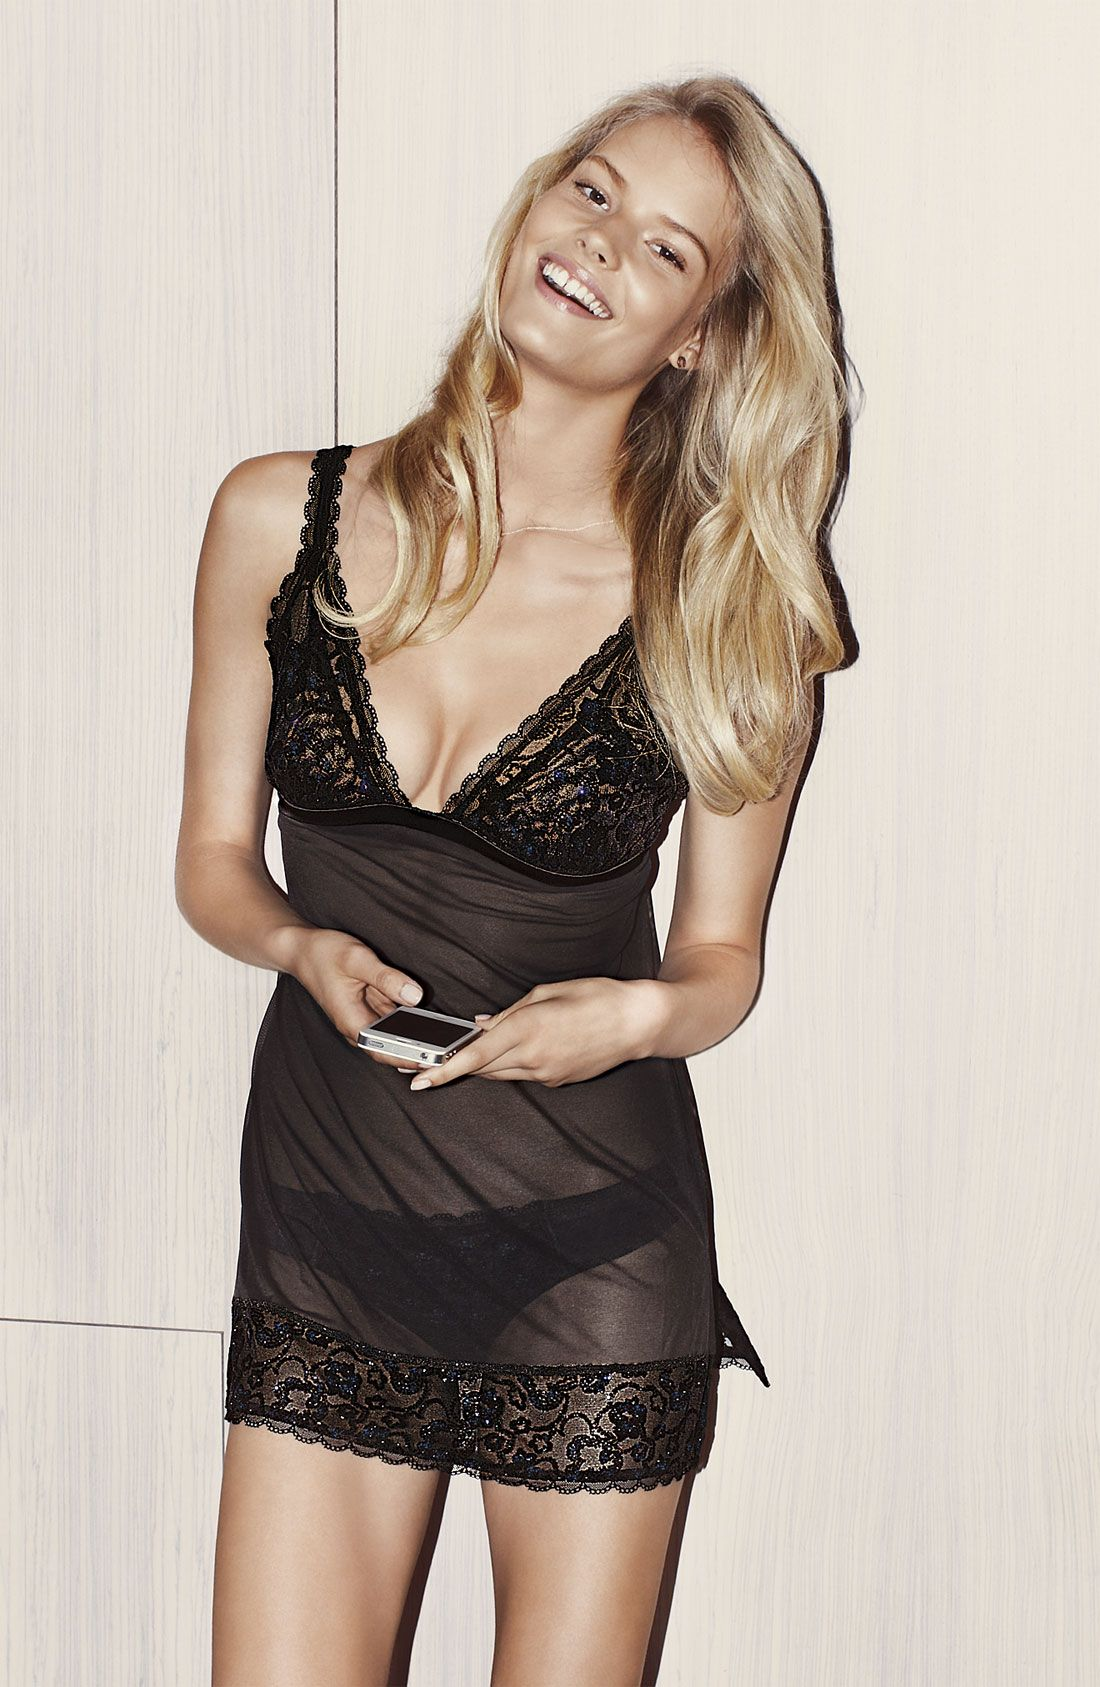 ... (Marilyn NY) features in Nordstrom December 2012 lingerie catalog